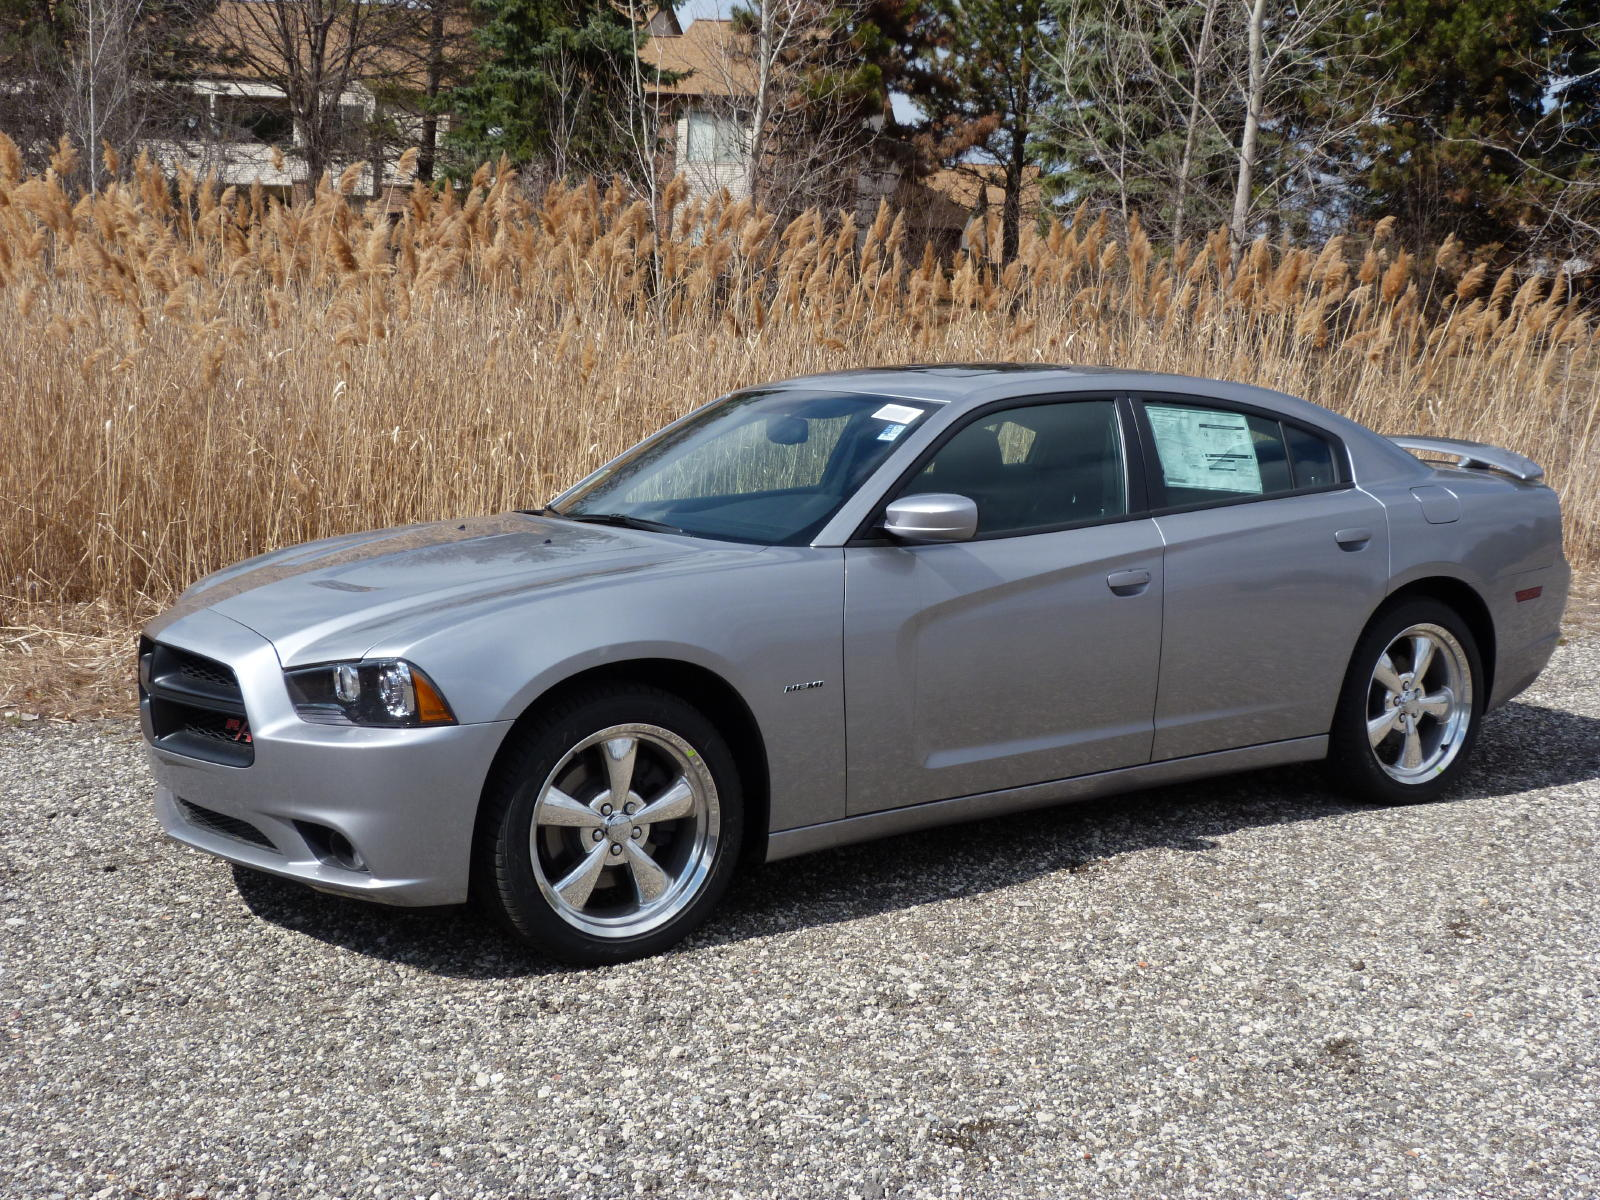 review 2011 dodge charger r t take one the truth about cars. Black Bedroom Furniture Sets. Home Design Ideas